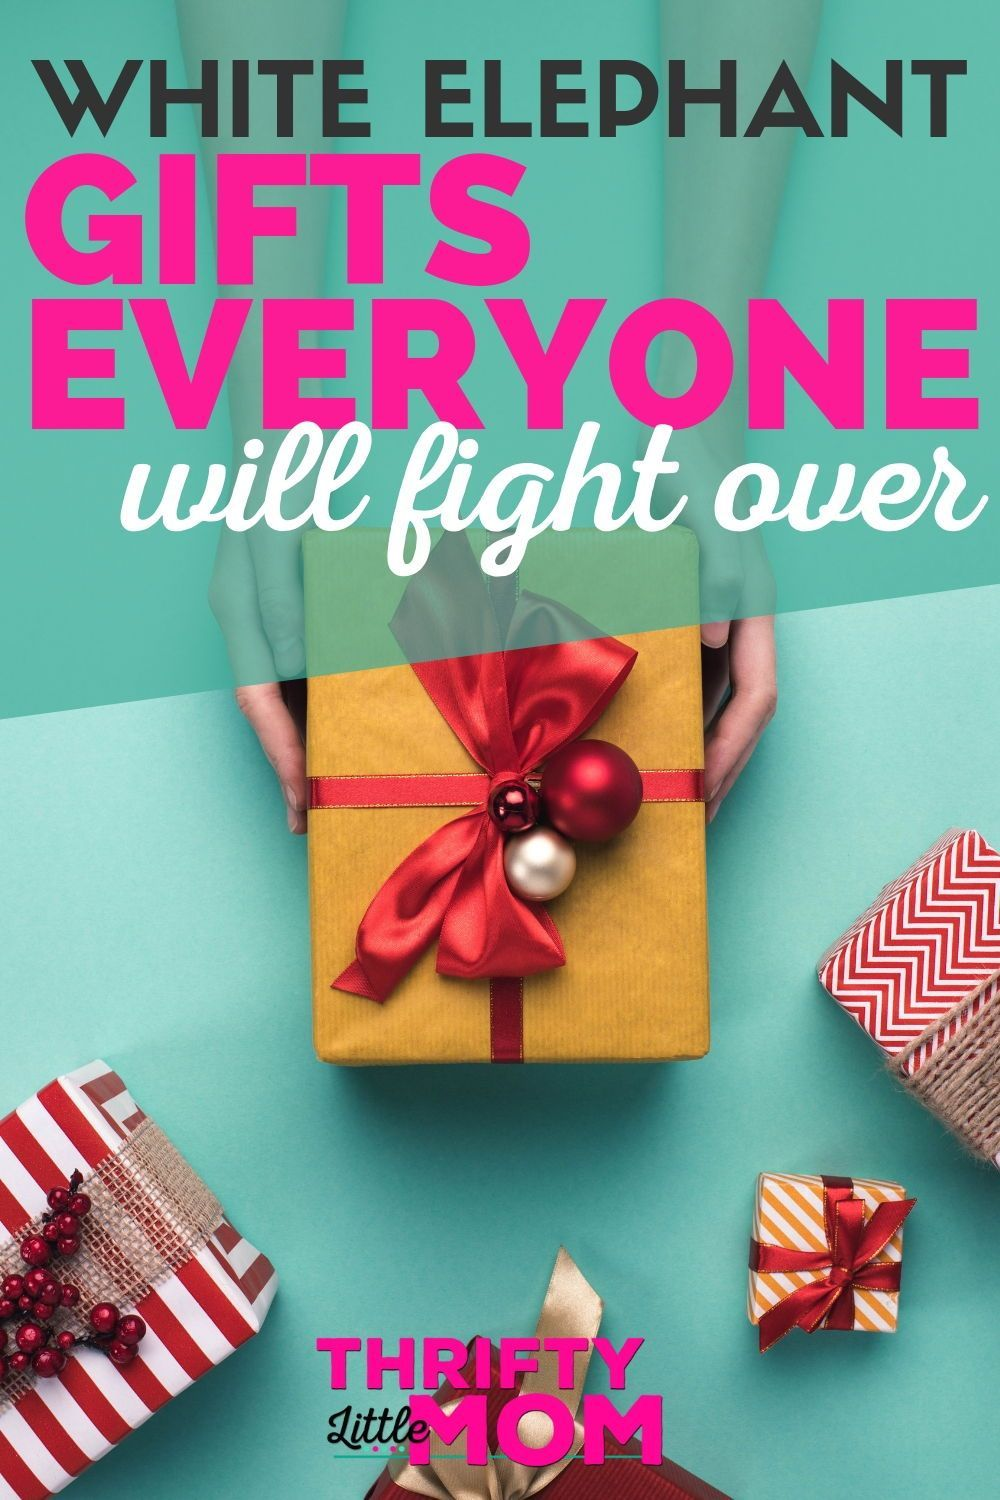 White Elephant gifts worth fighting for. Inspiration for